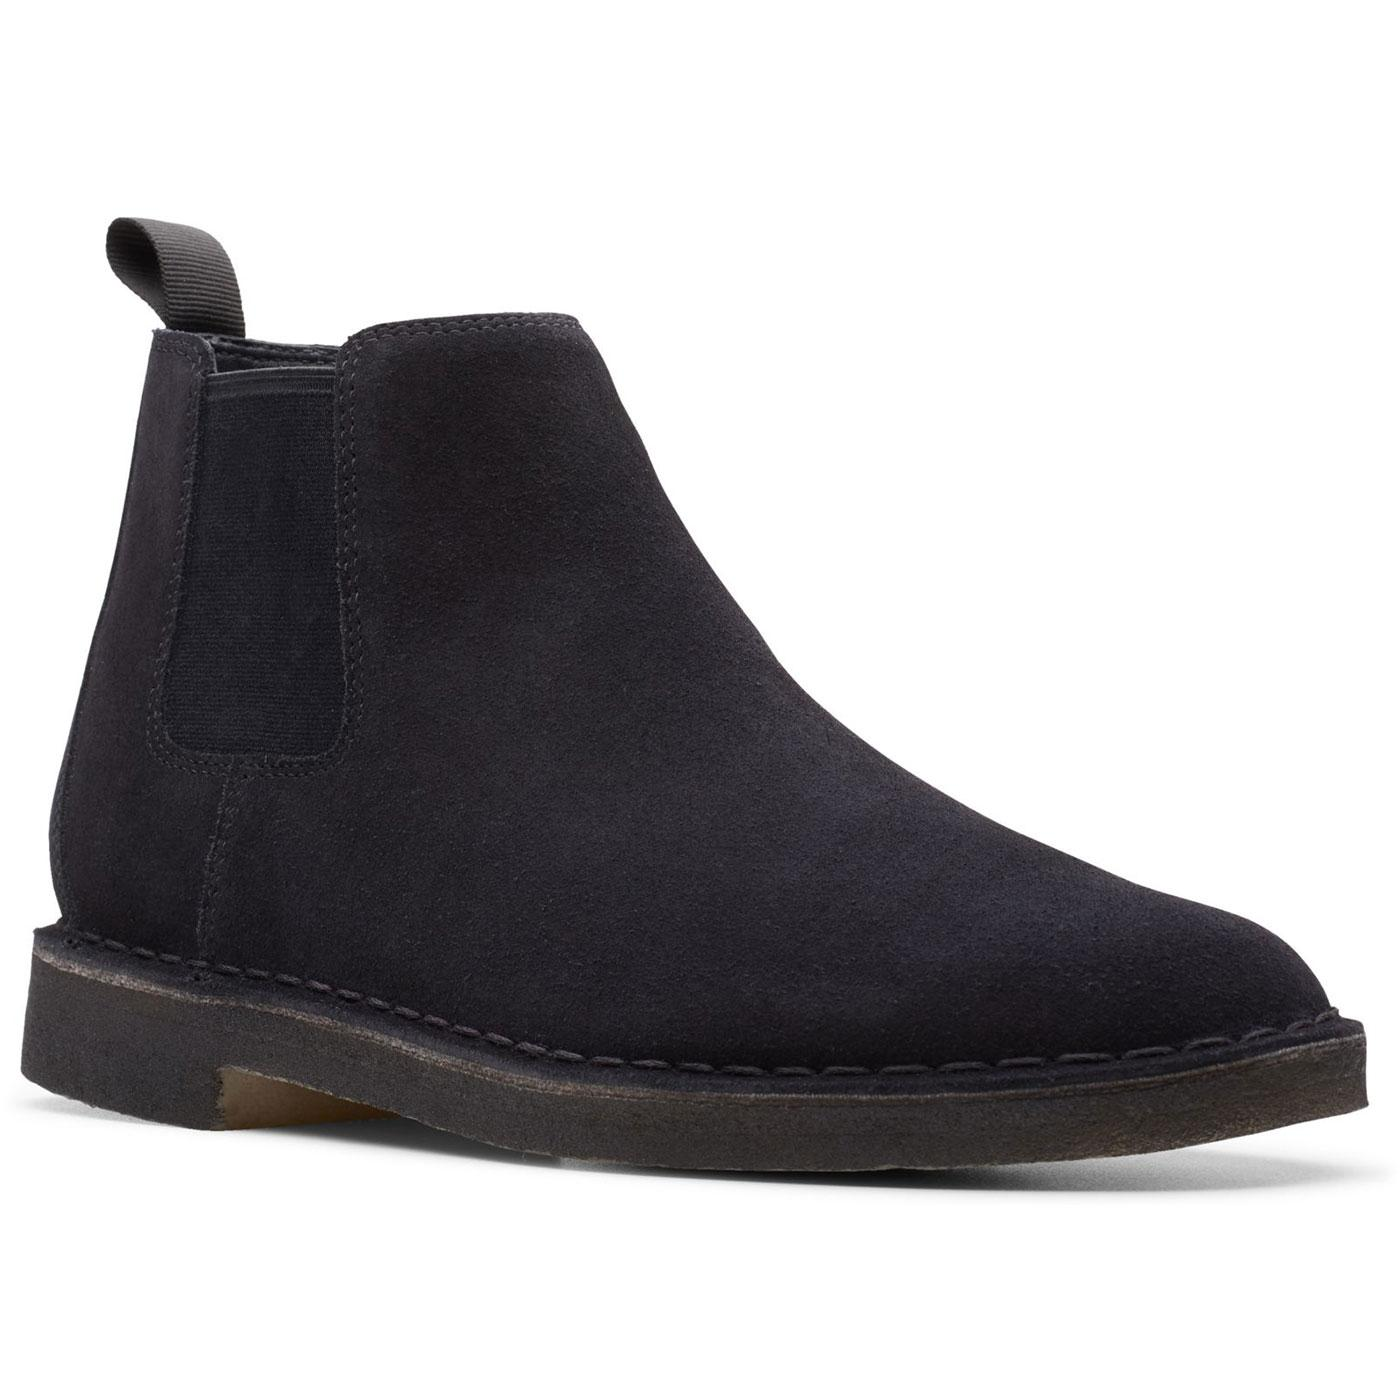 Desert Chelsea Boots CLARKS ORIGINALS Suede Shoes